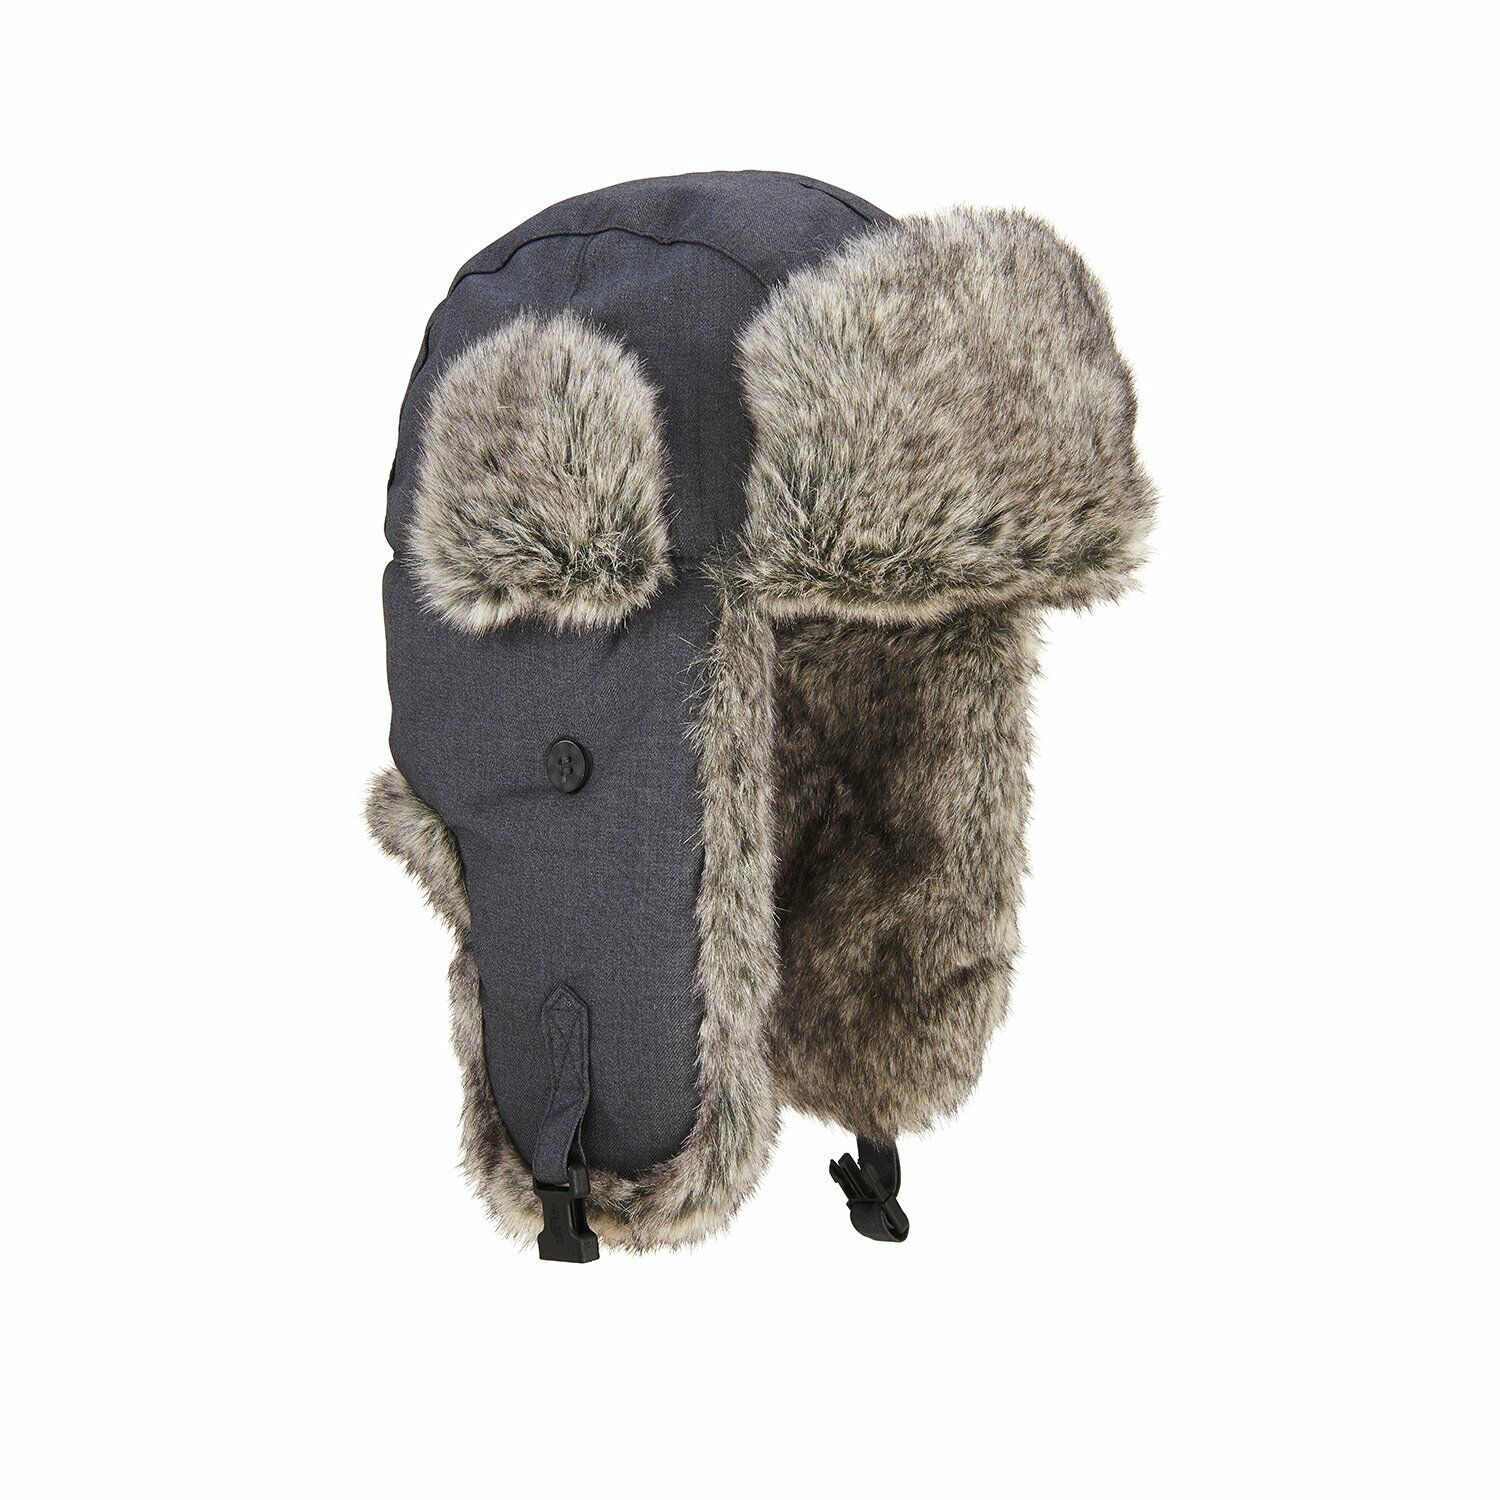 Extremities Ajo Faux Fur Lined Trapper Hat - Grey One Size ... d4ed3977b70